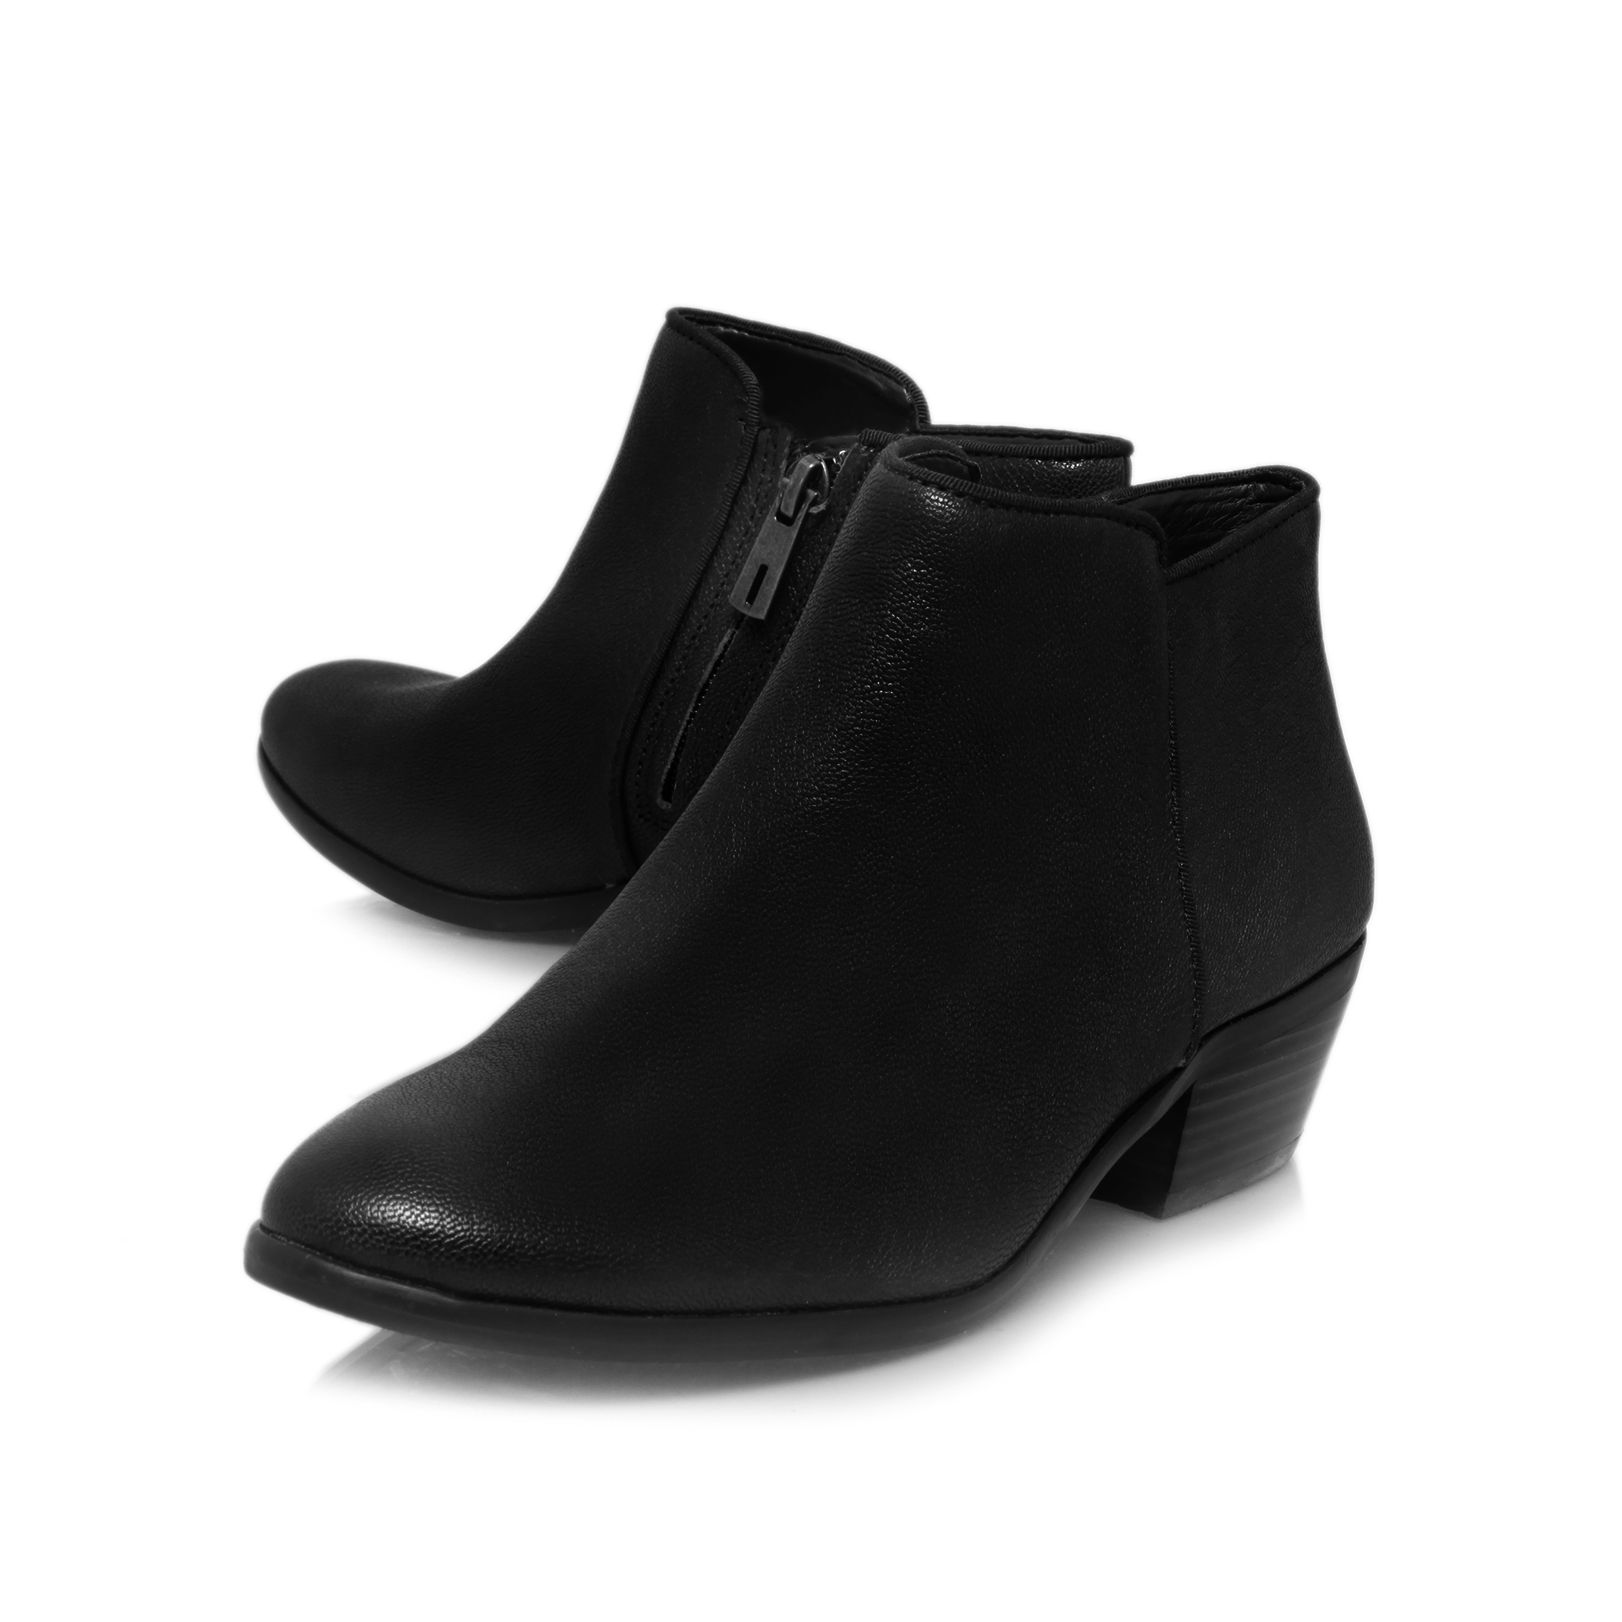 Petty low heeled ankle boots